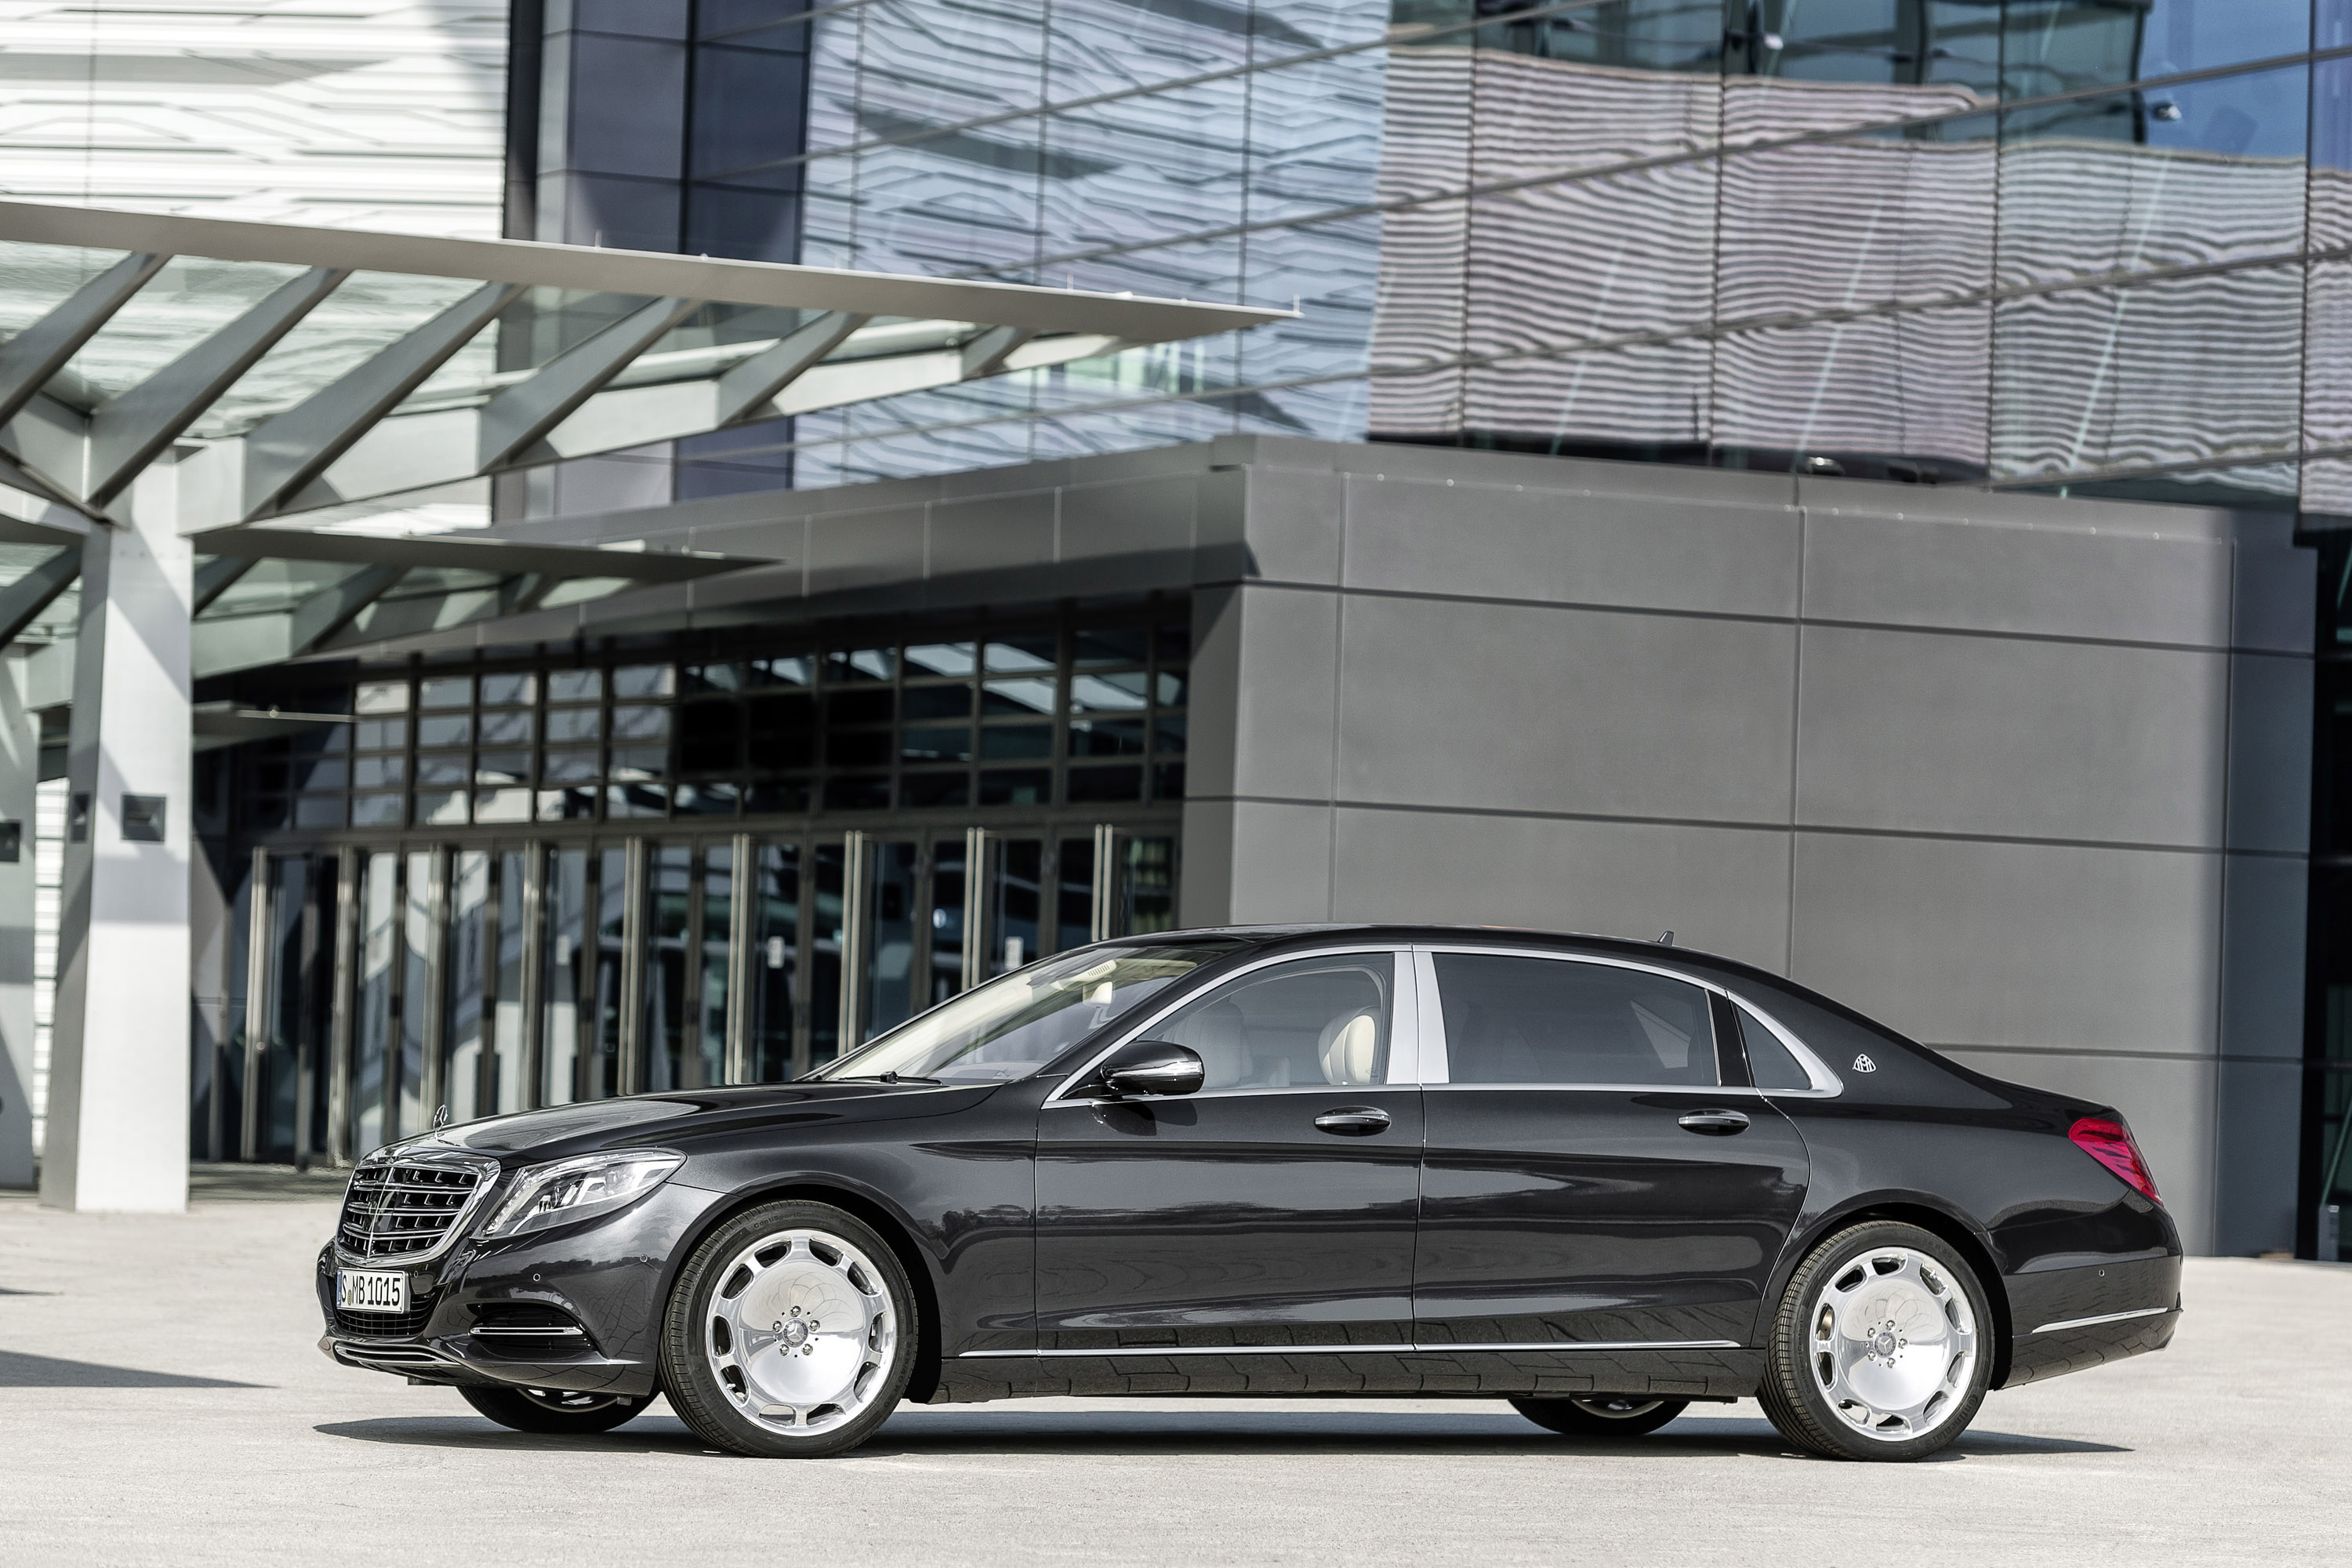 2016 Mercedes-Benz S-Class Maybach - Picture 113417